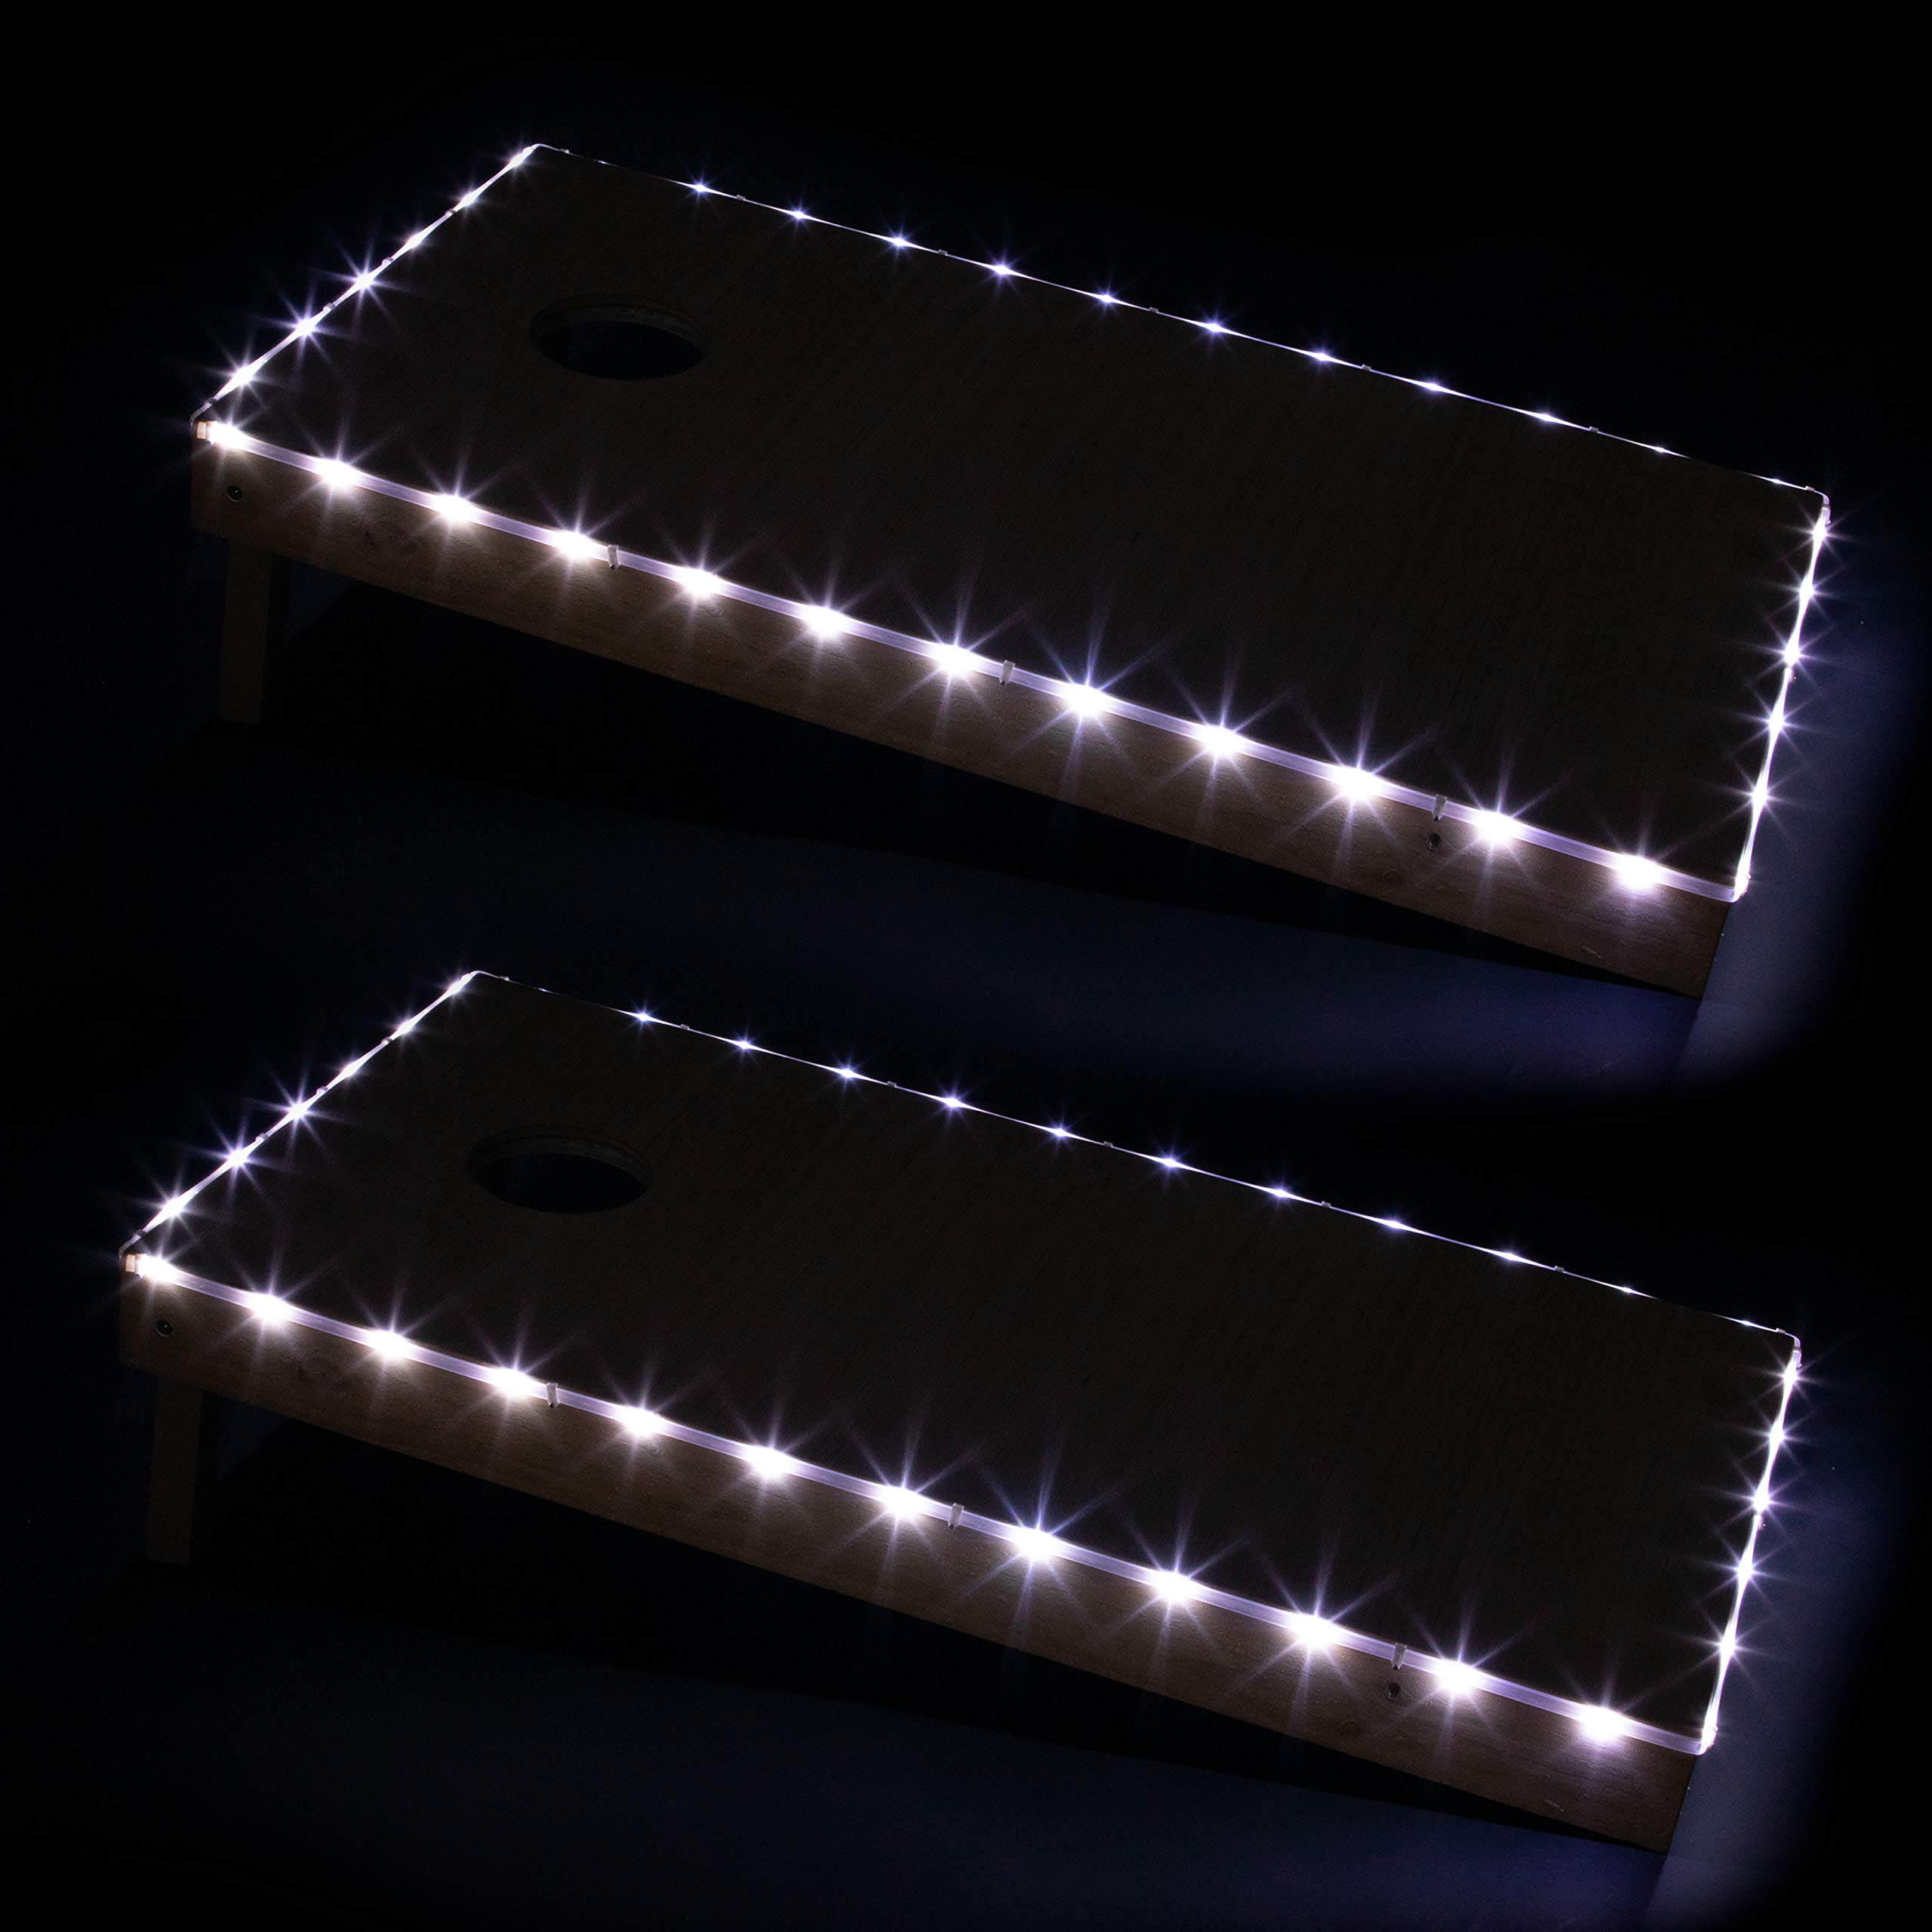 Play Platoon LED Cornhole Board Lights Set of 2, White - Corn Hole Edge Lighting Kit for Lighted Outdoor Night Games - Bright, Long Lasting, Easy to Install by Play Platoon